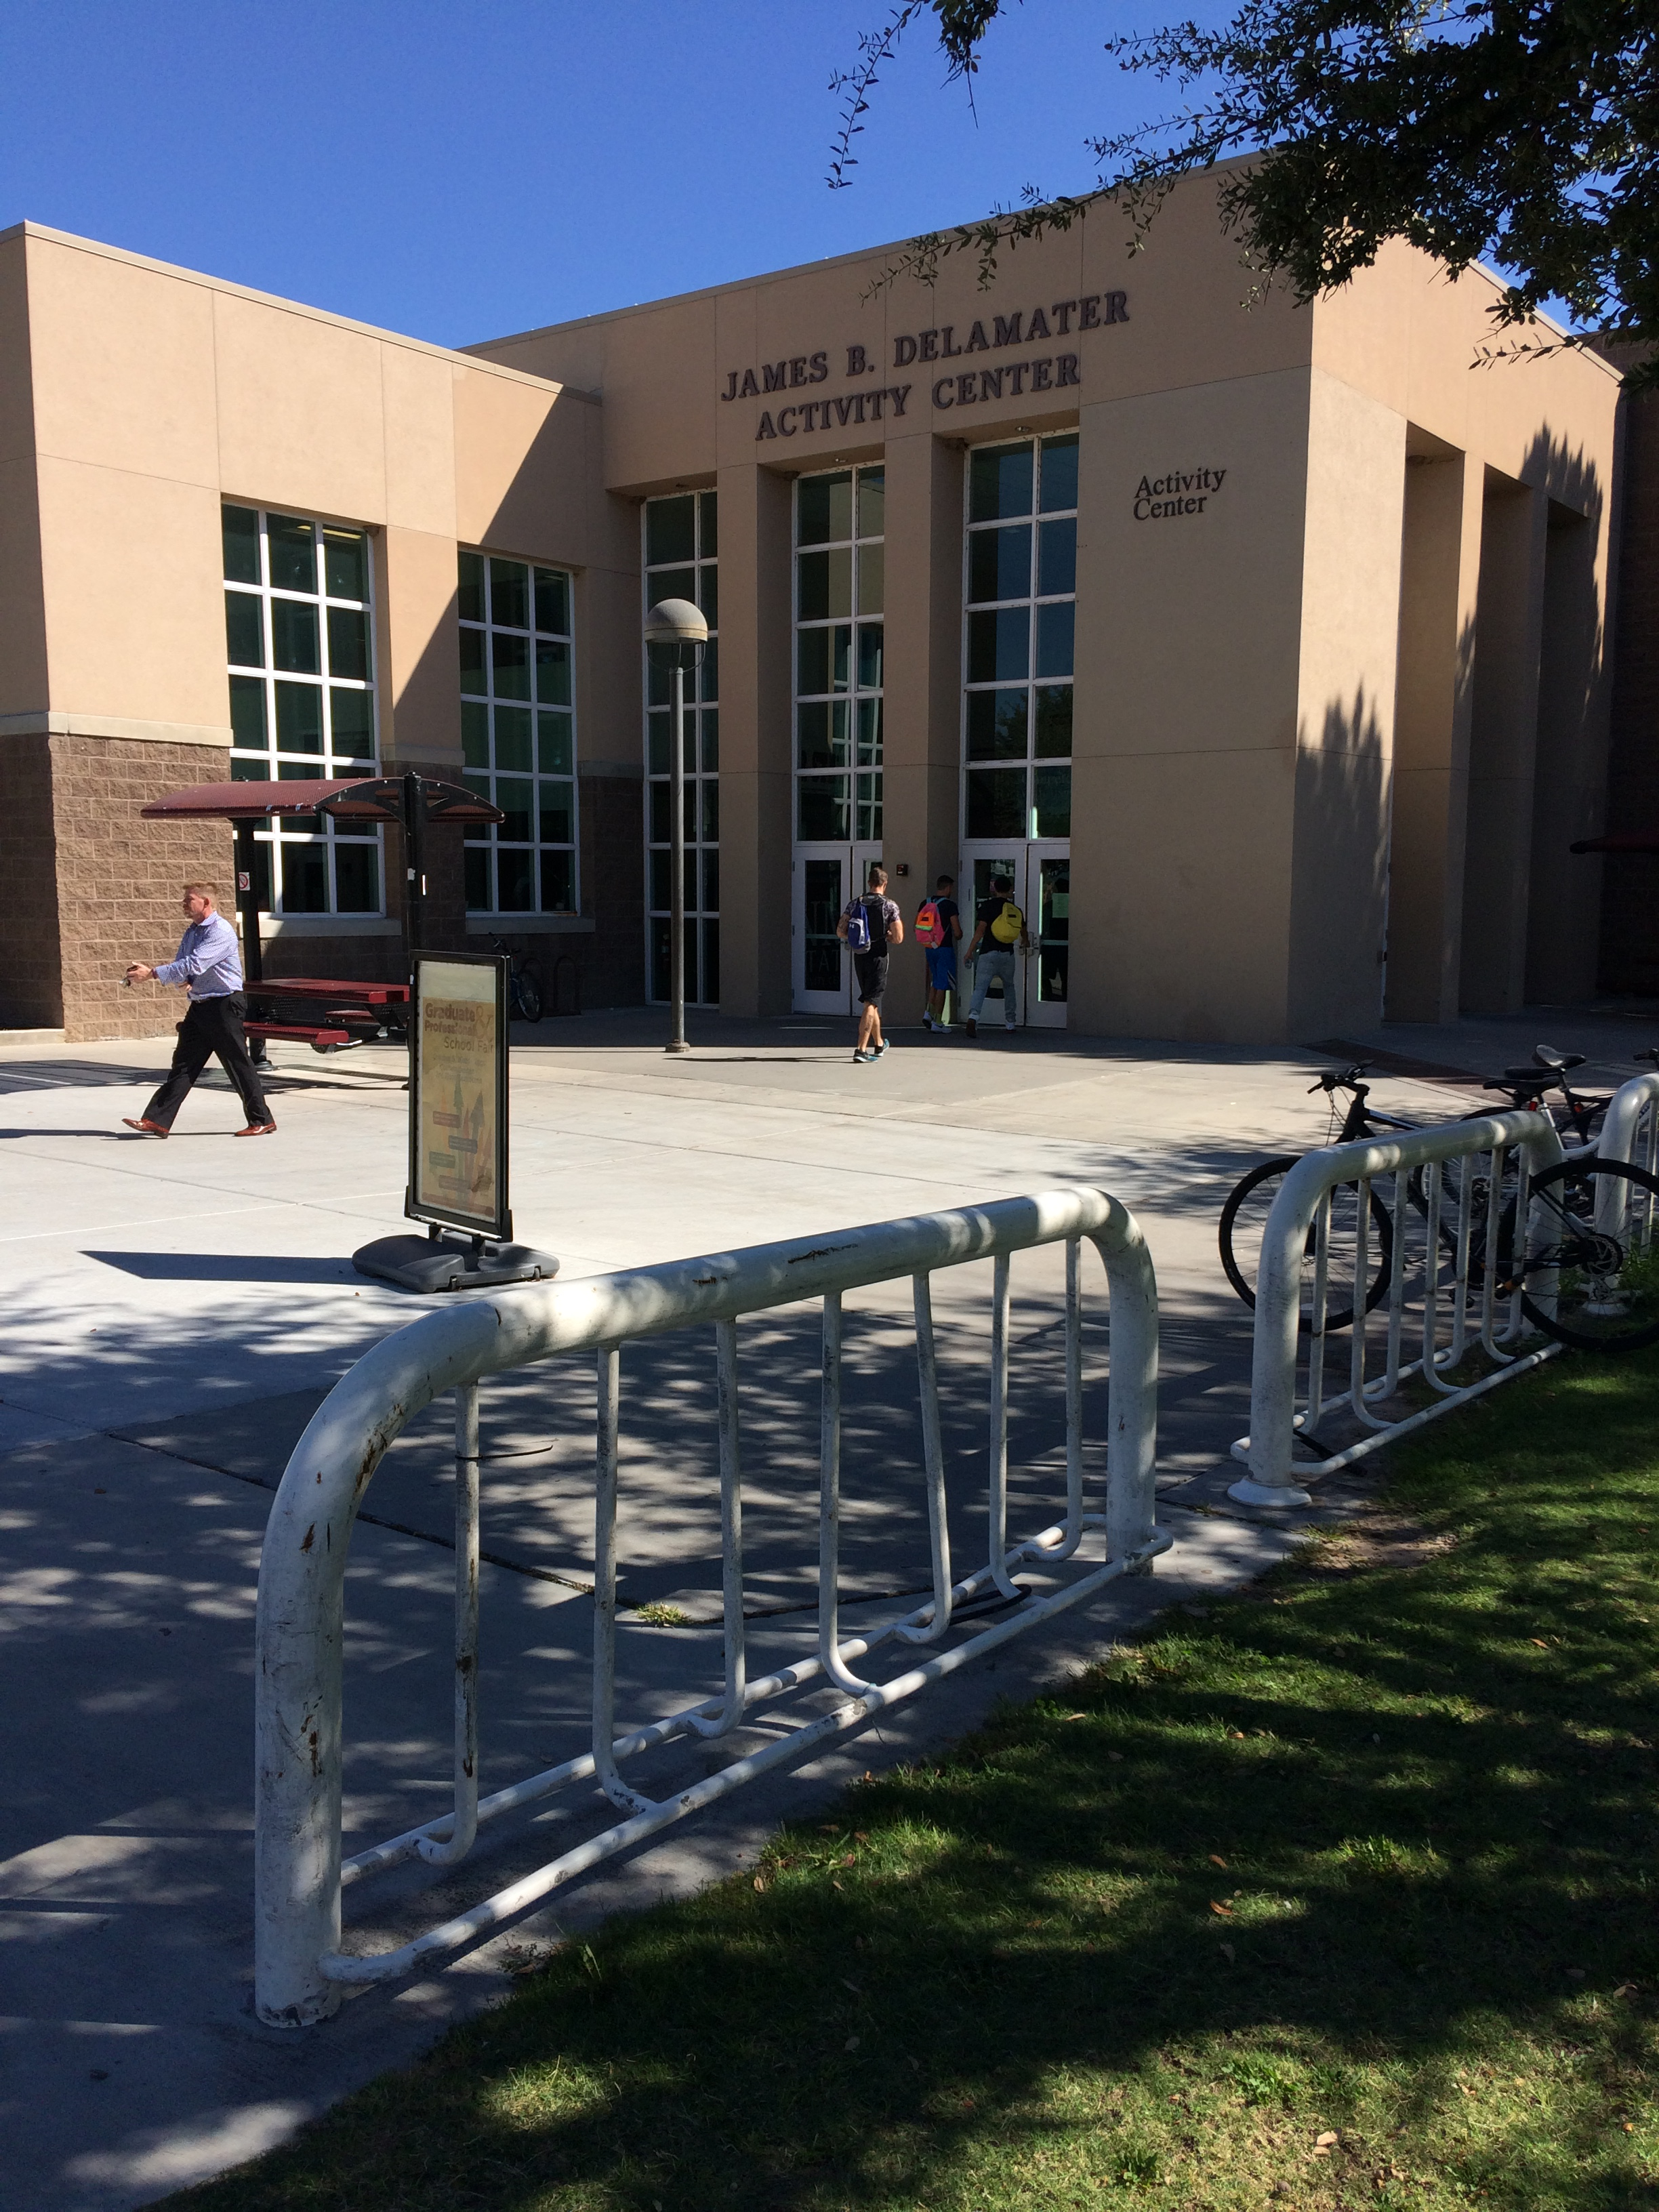 Updated Bike Racks, Activity Center